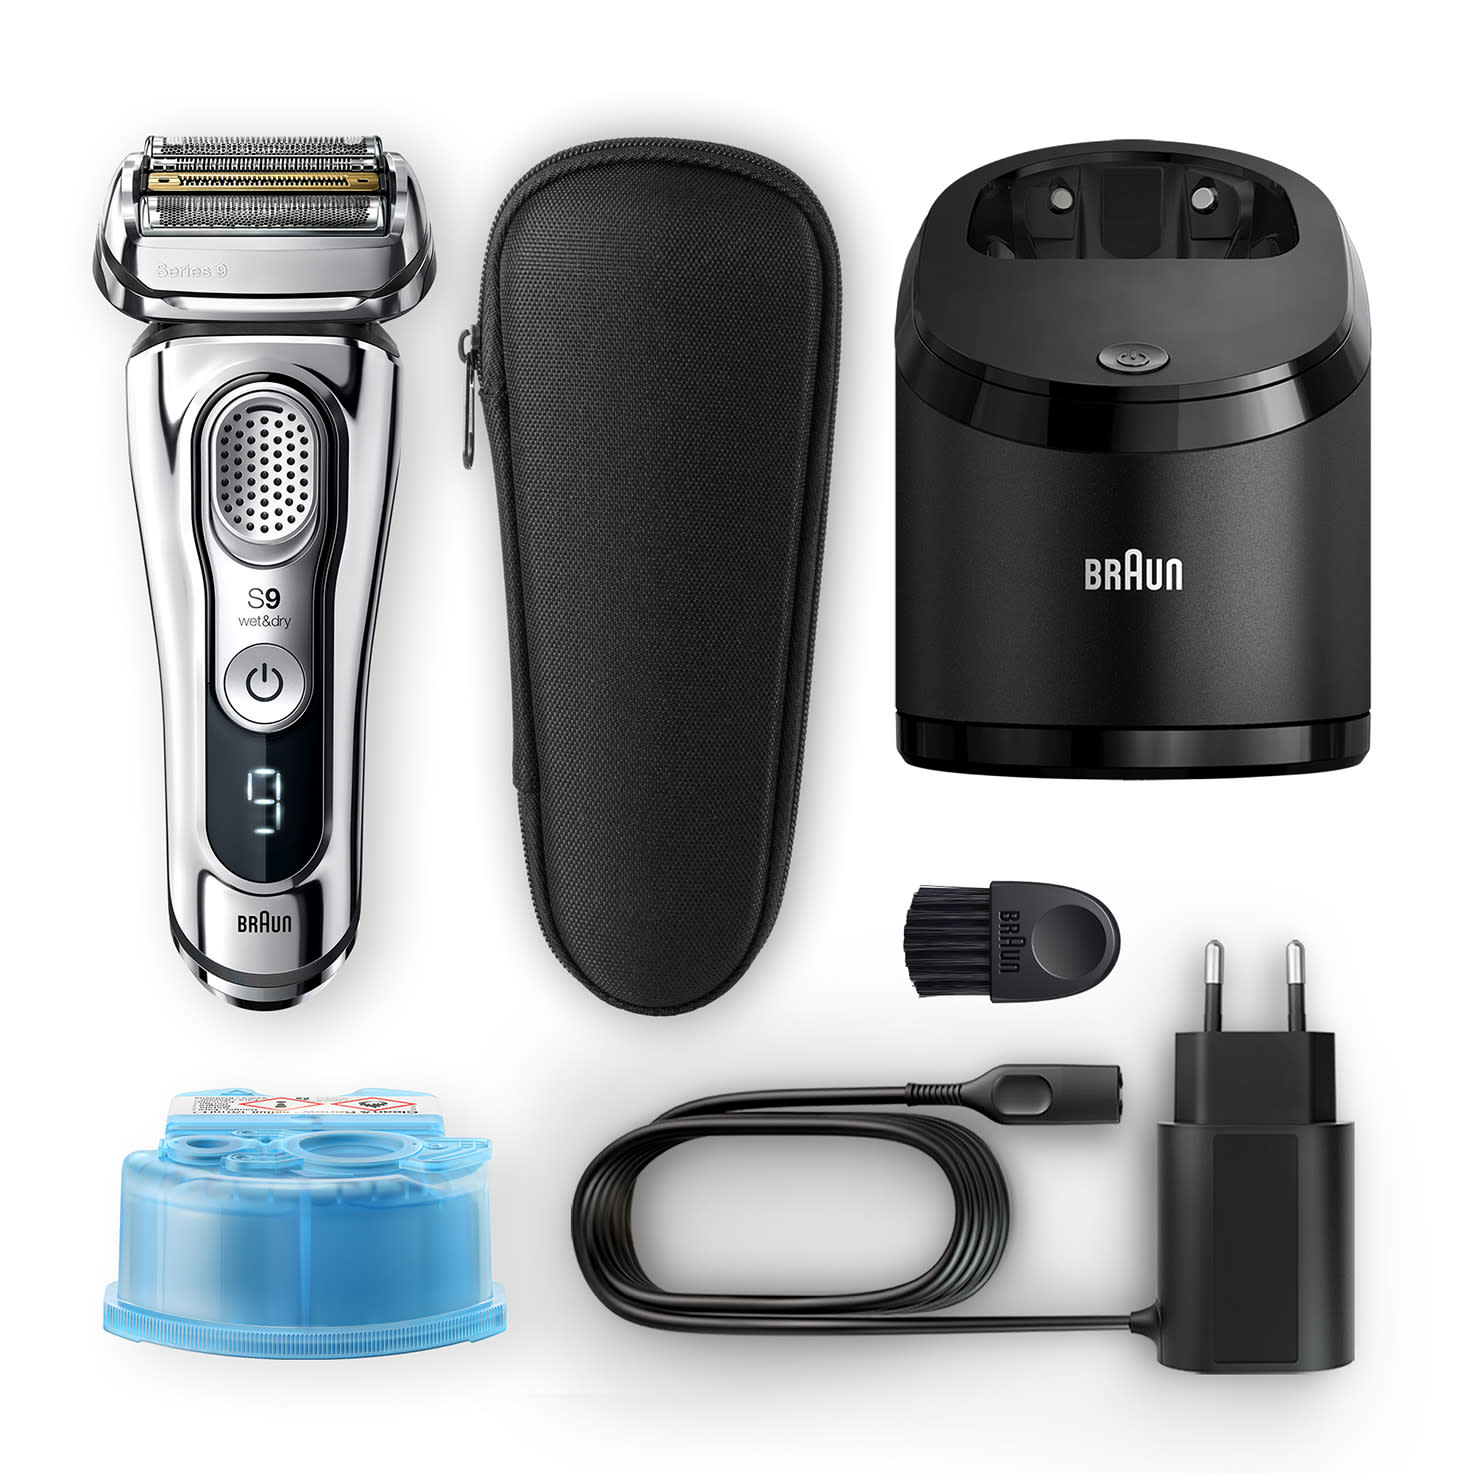 Series 9 9376cc shaver - What´s in the box